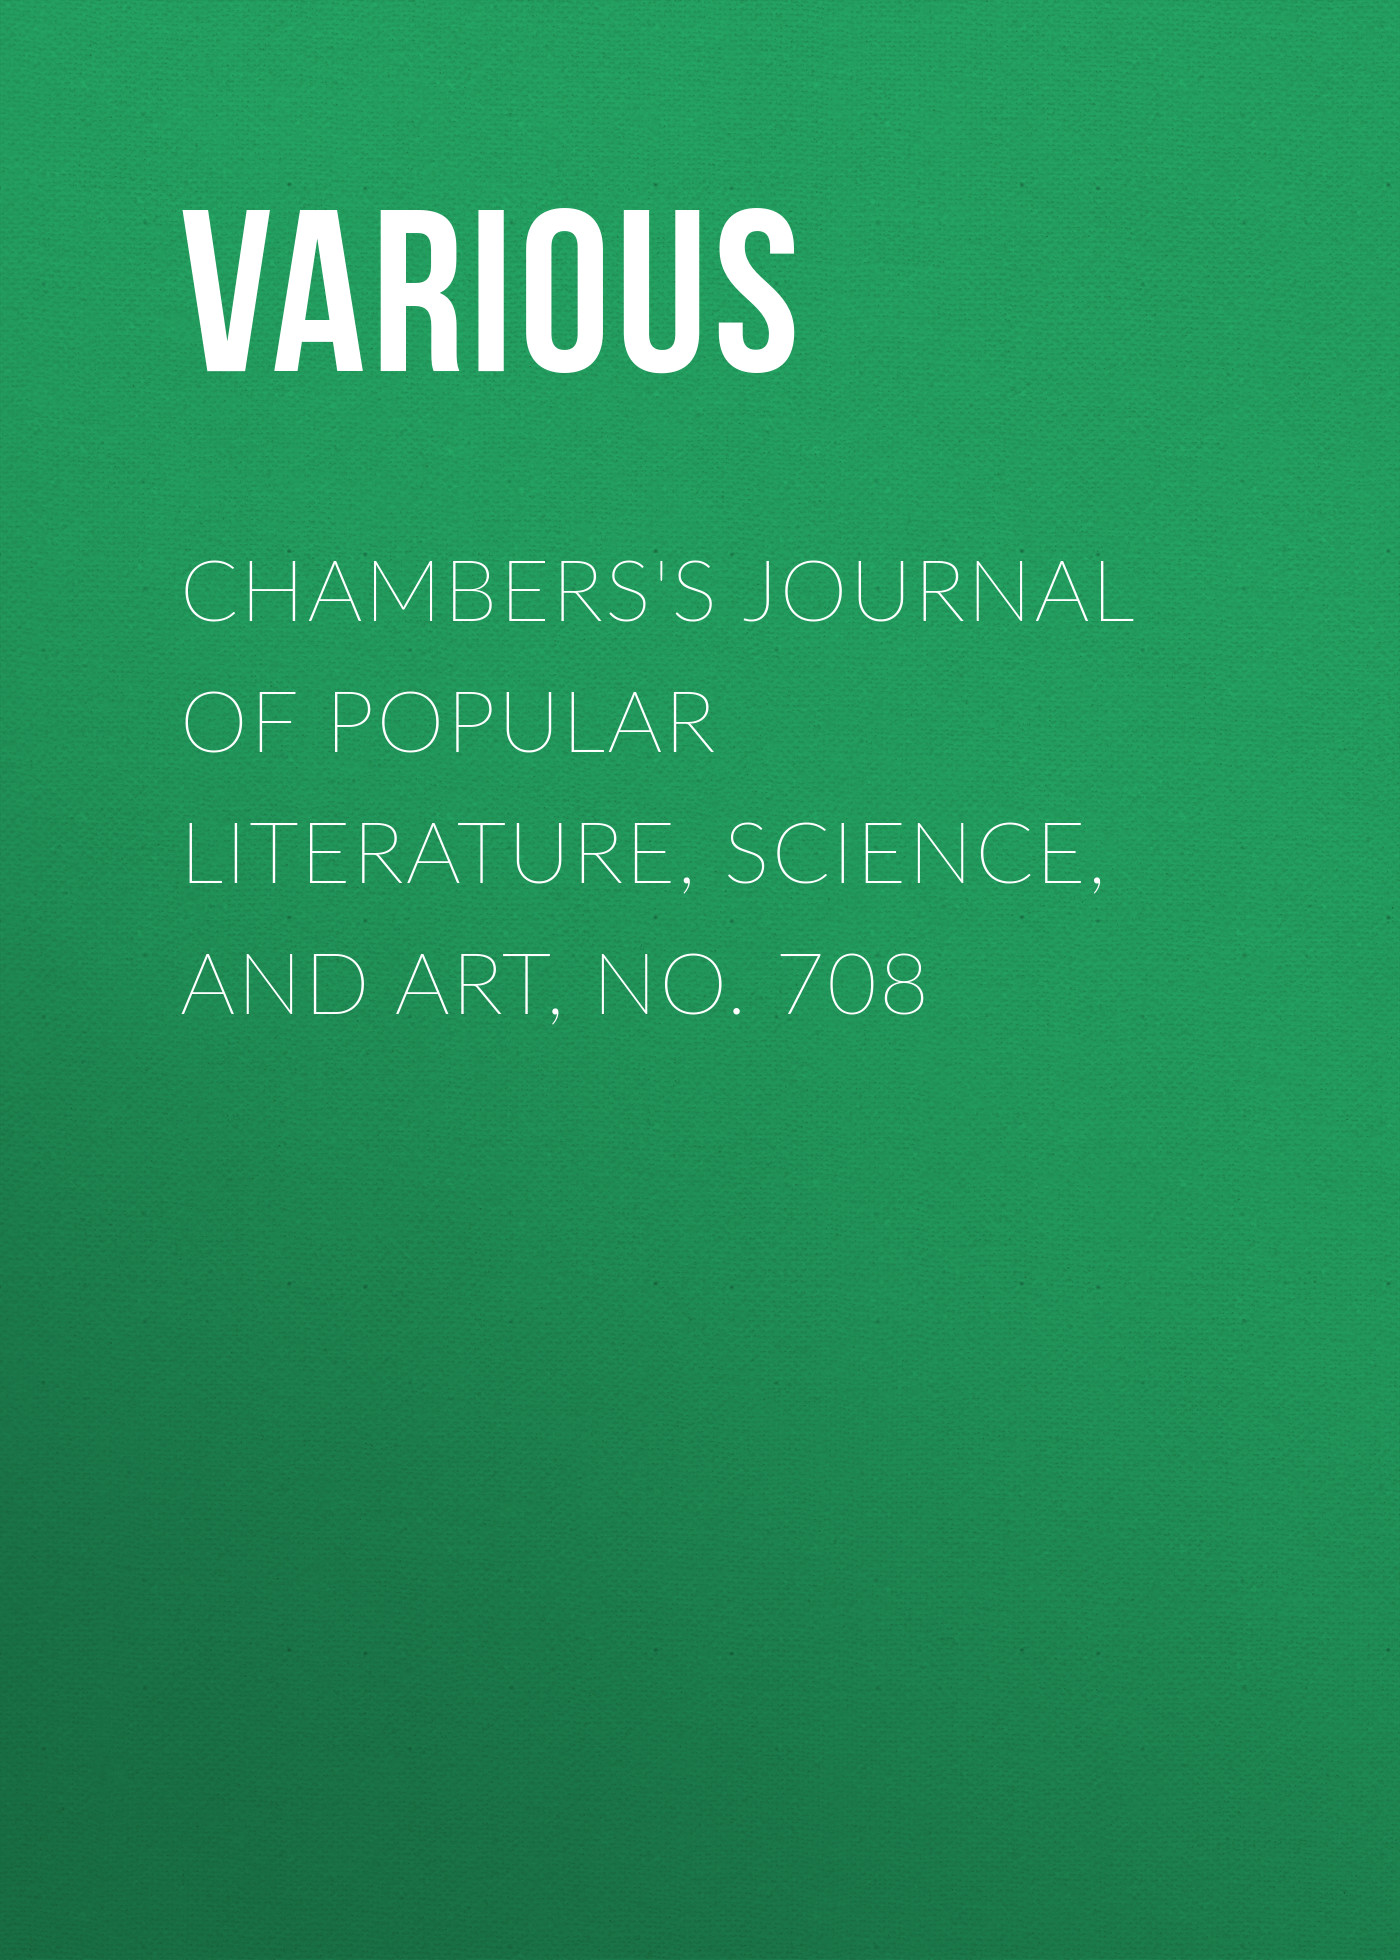 Various Chambers's Journal of Popular Literature, Science, and Art, No. 708 various chambers s journal of popular literature science and art no 699